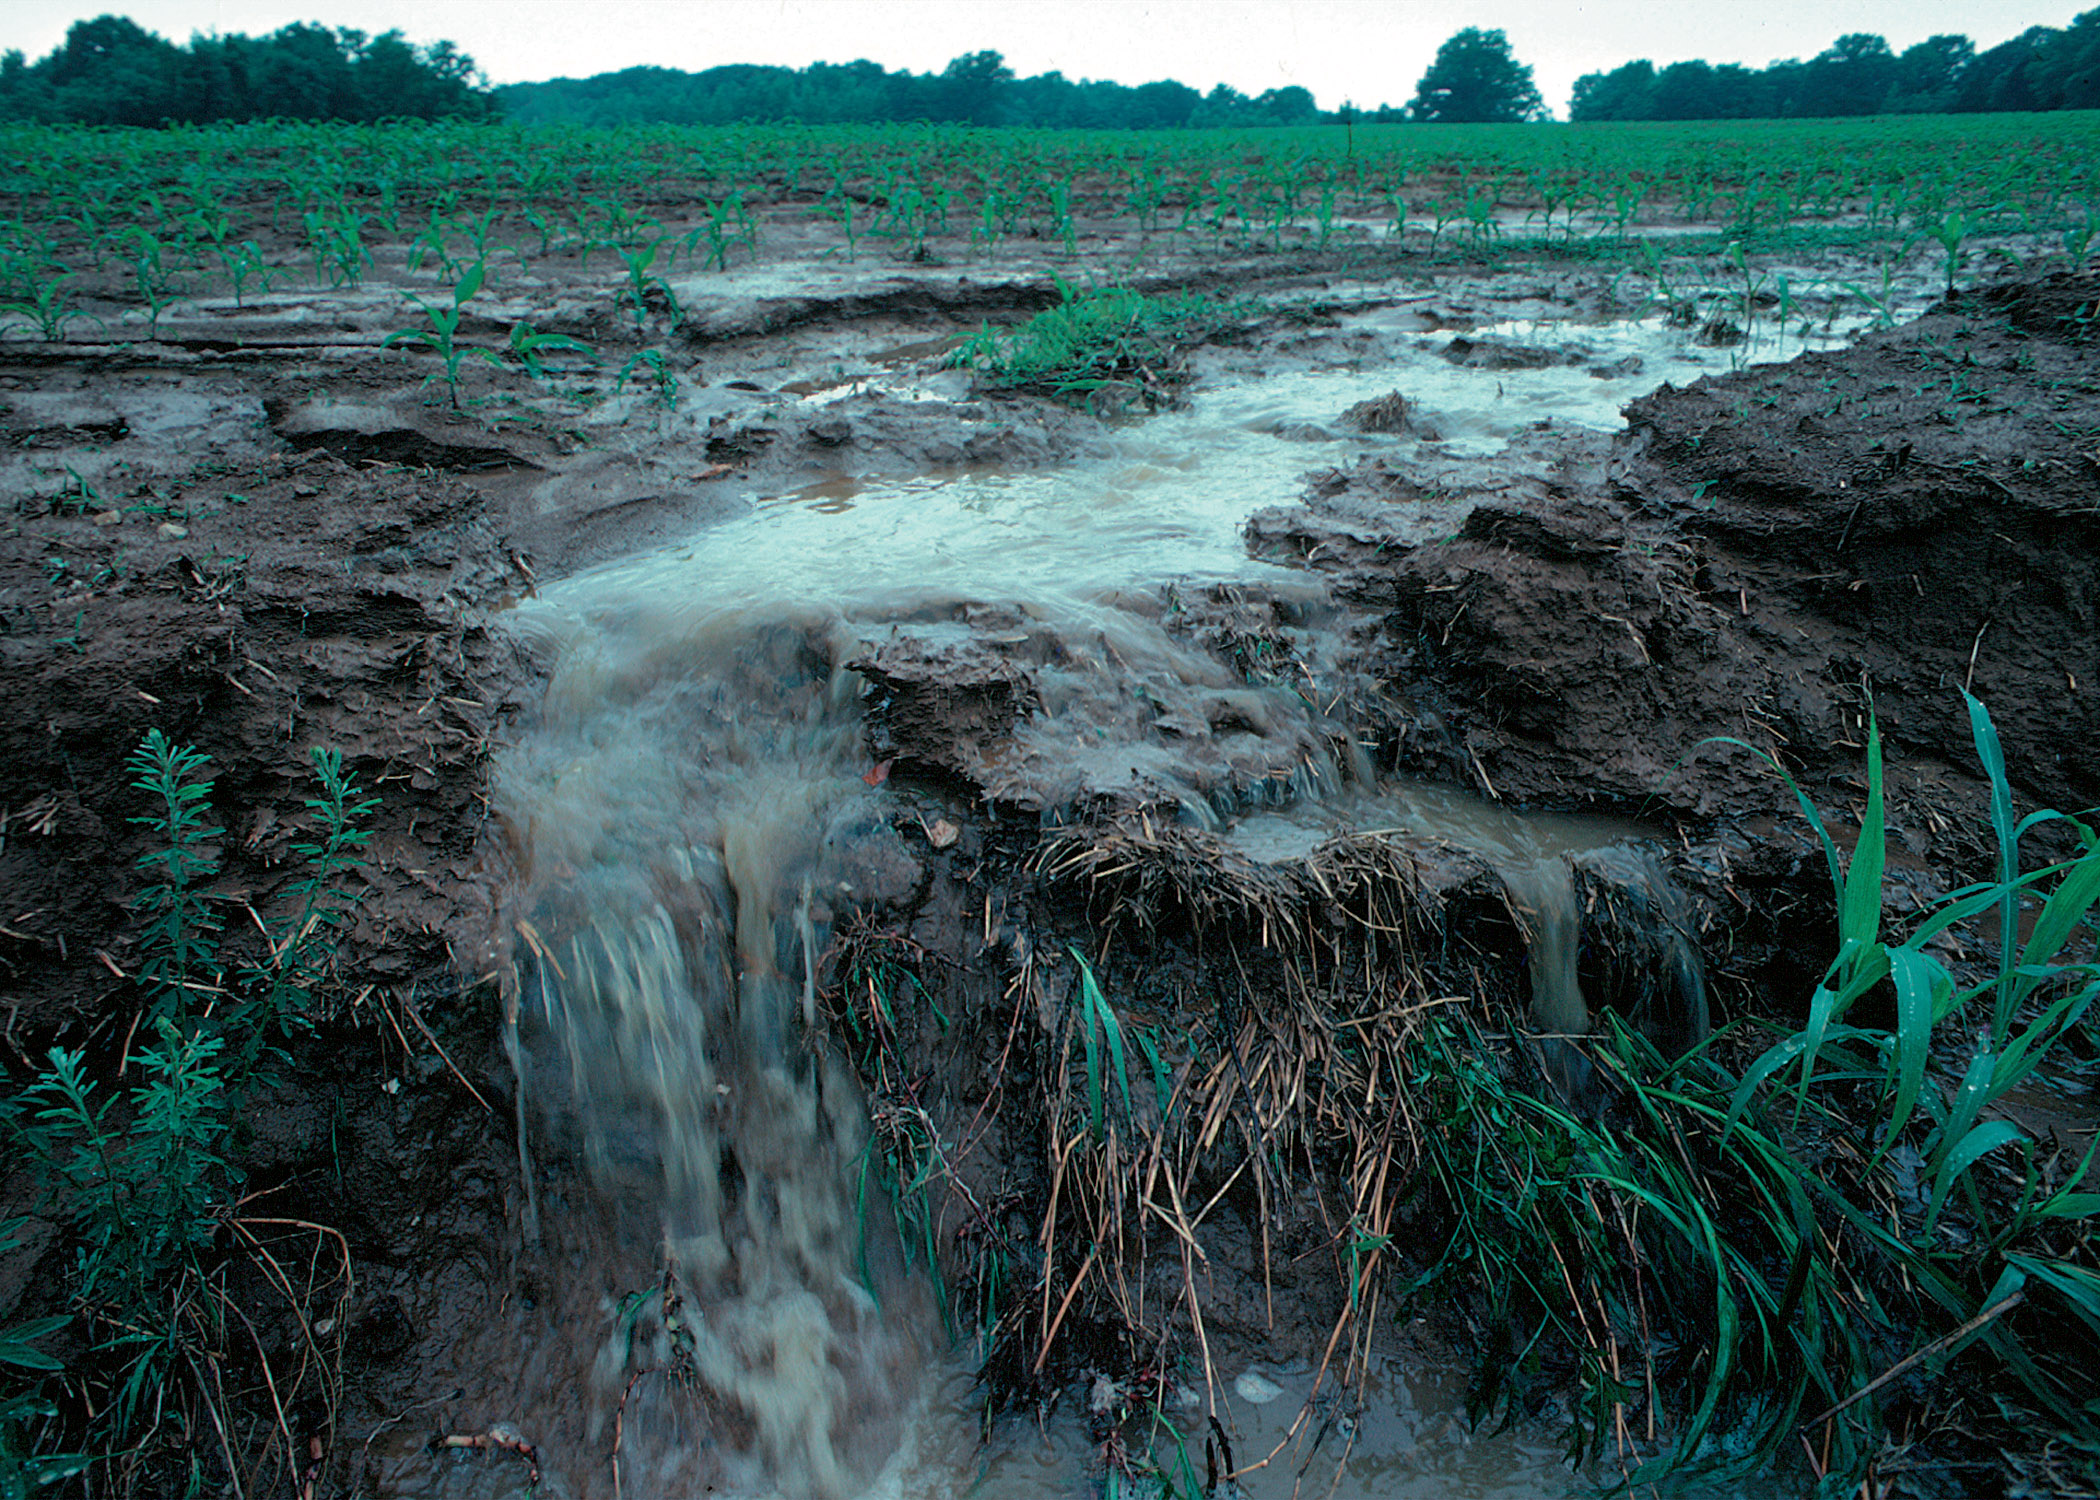 However, a lot of fertilizer is never used by plants. Fertilizer runs off farm fields and lawns into local waterways.